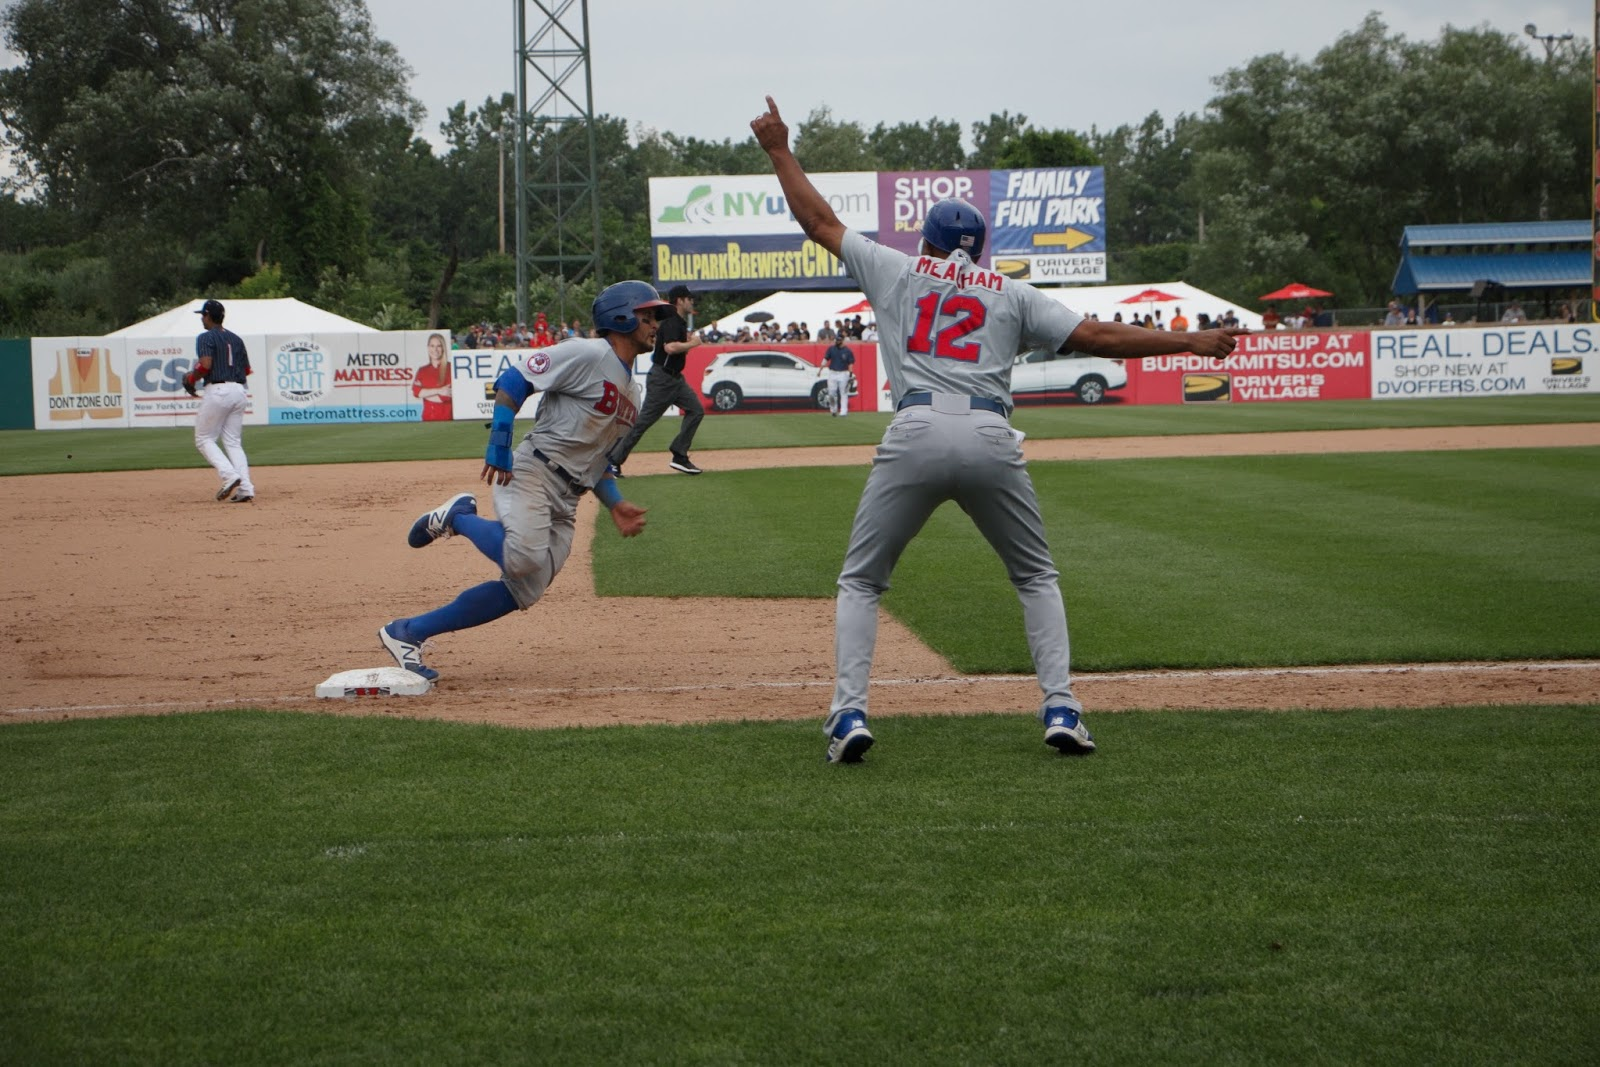 Bisons End Ten-Game Skid, Break Chiefs' Winning Streak